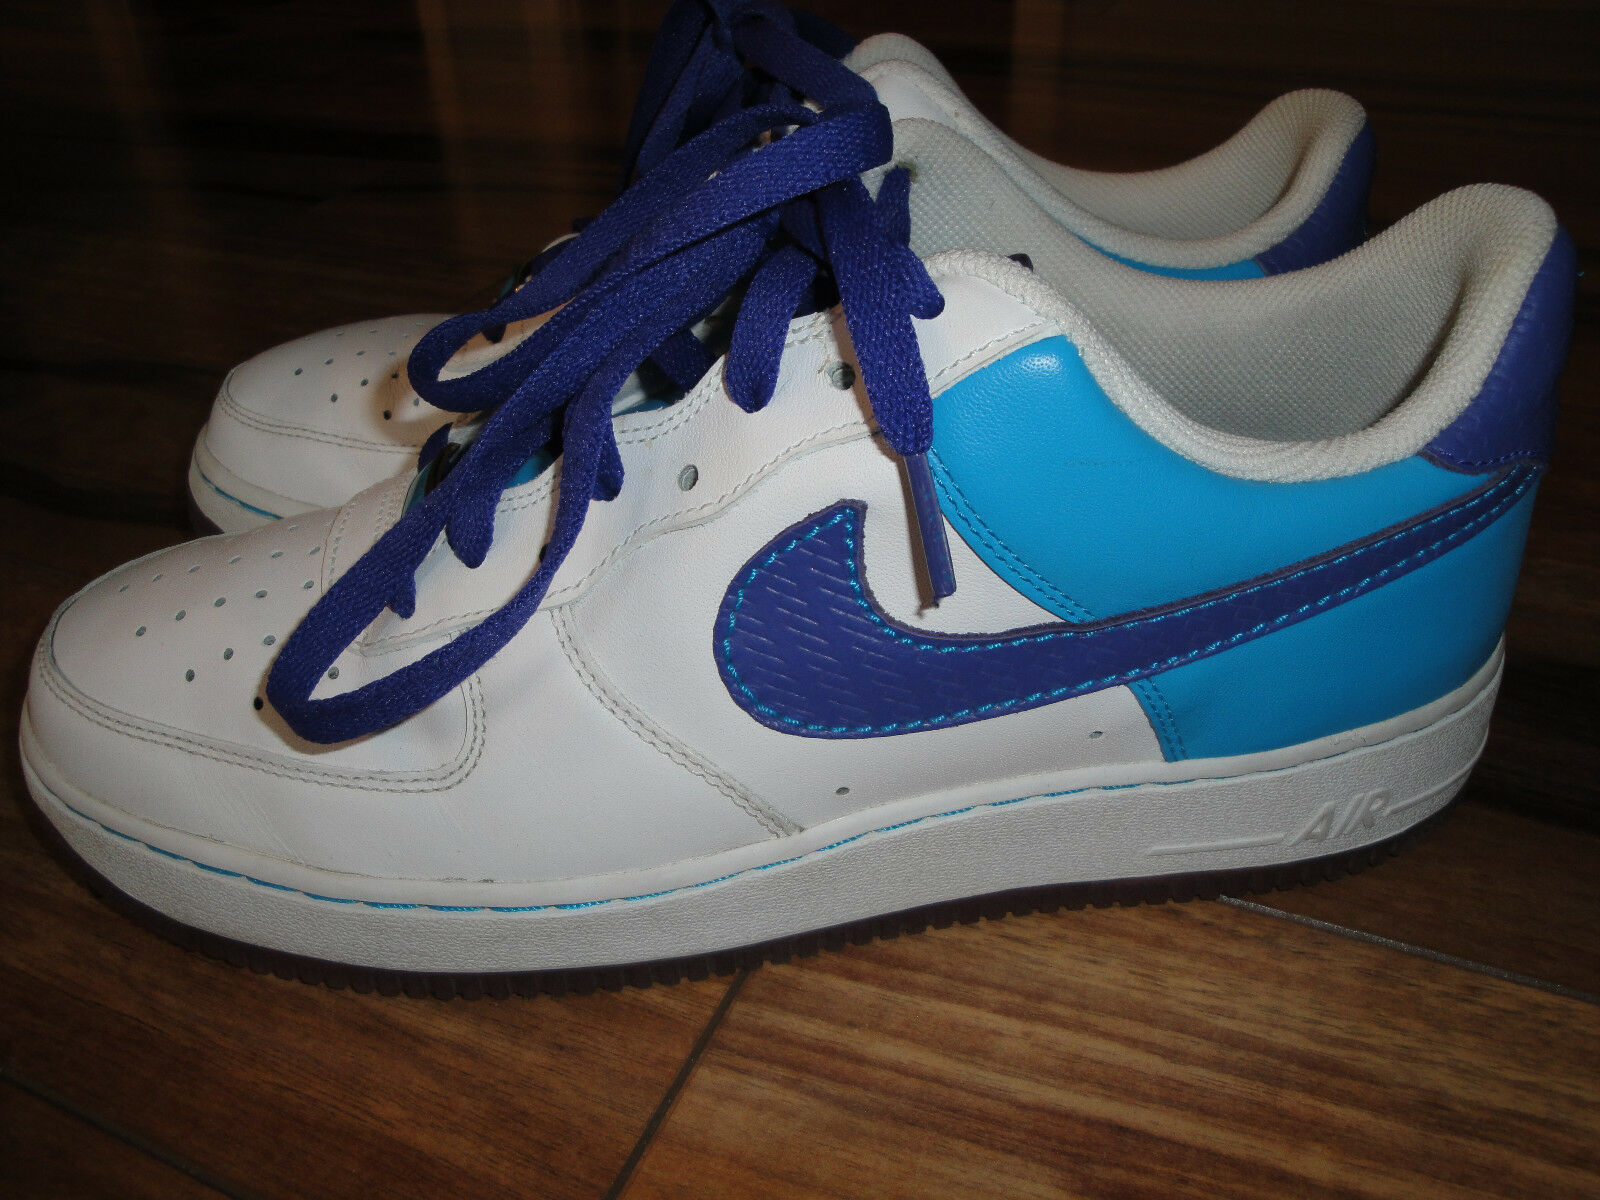 Nike Air Force 1 '07 Size 10 Style White Purple & Laser blueee